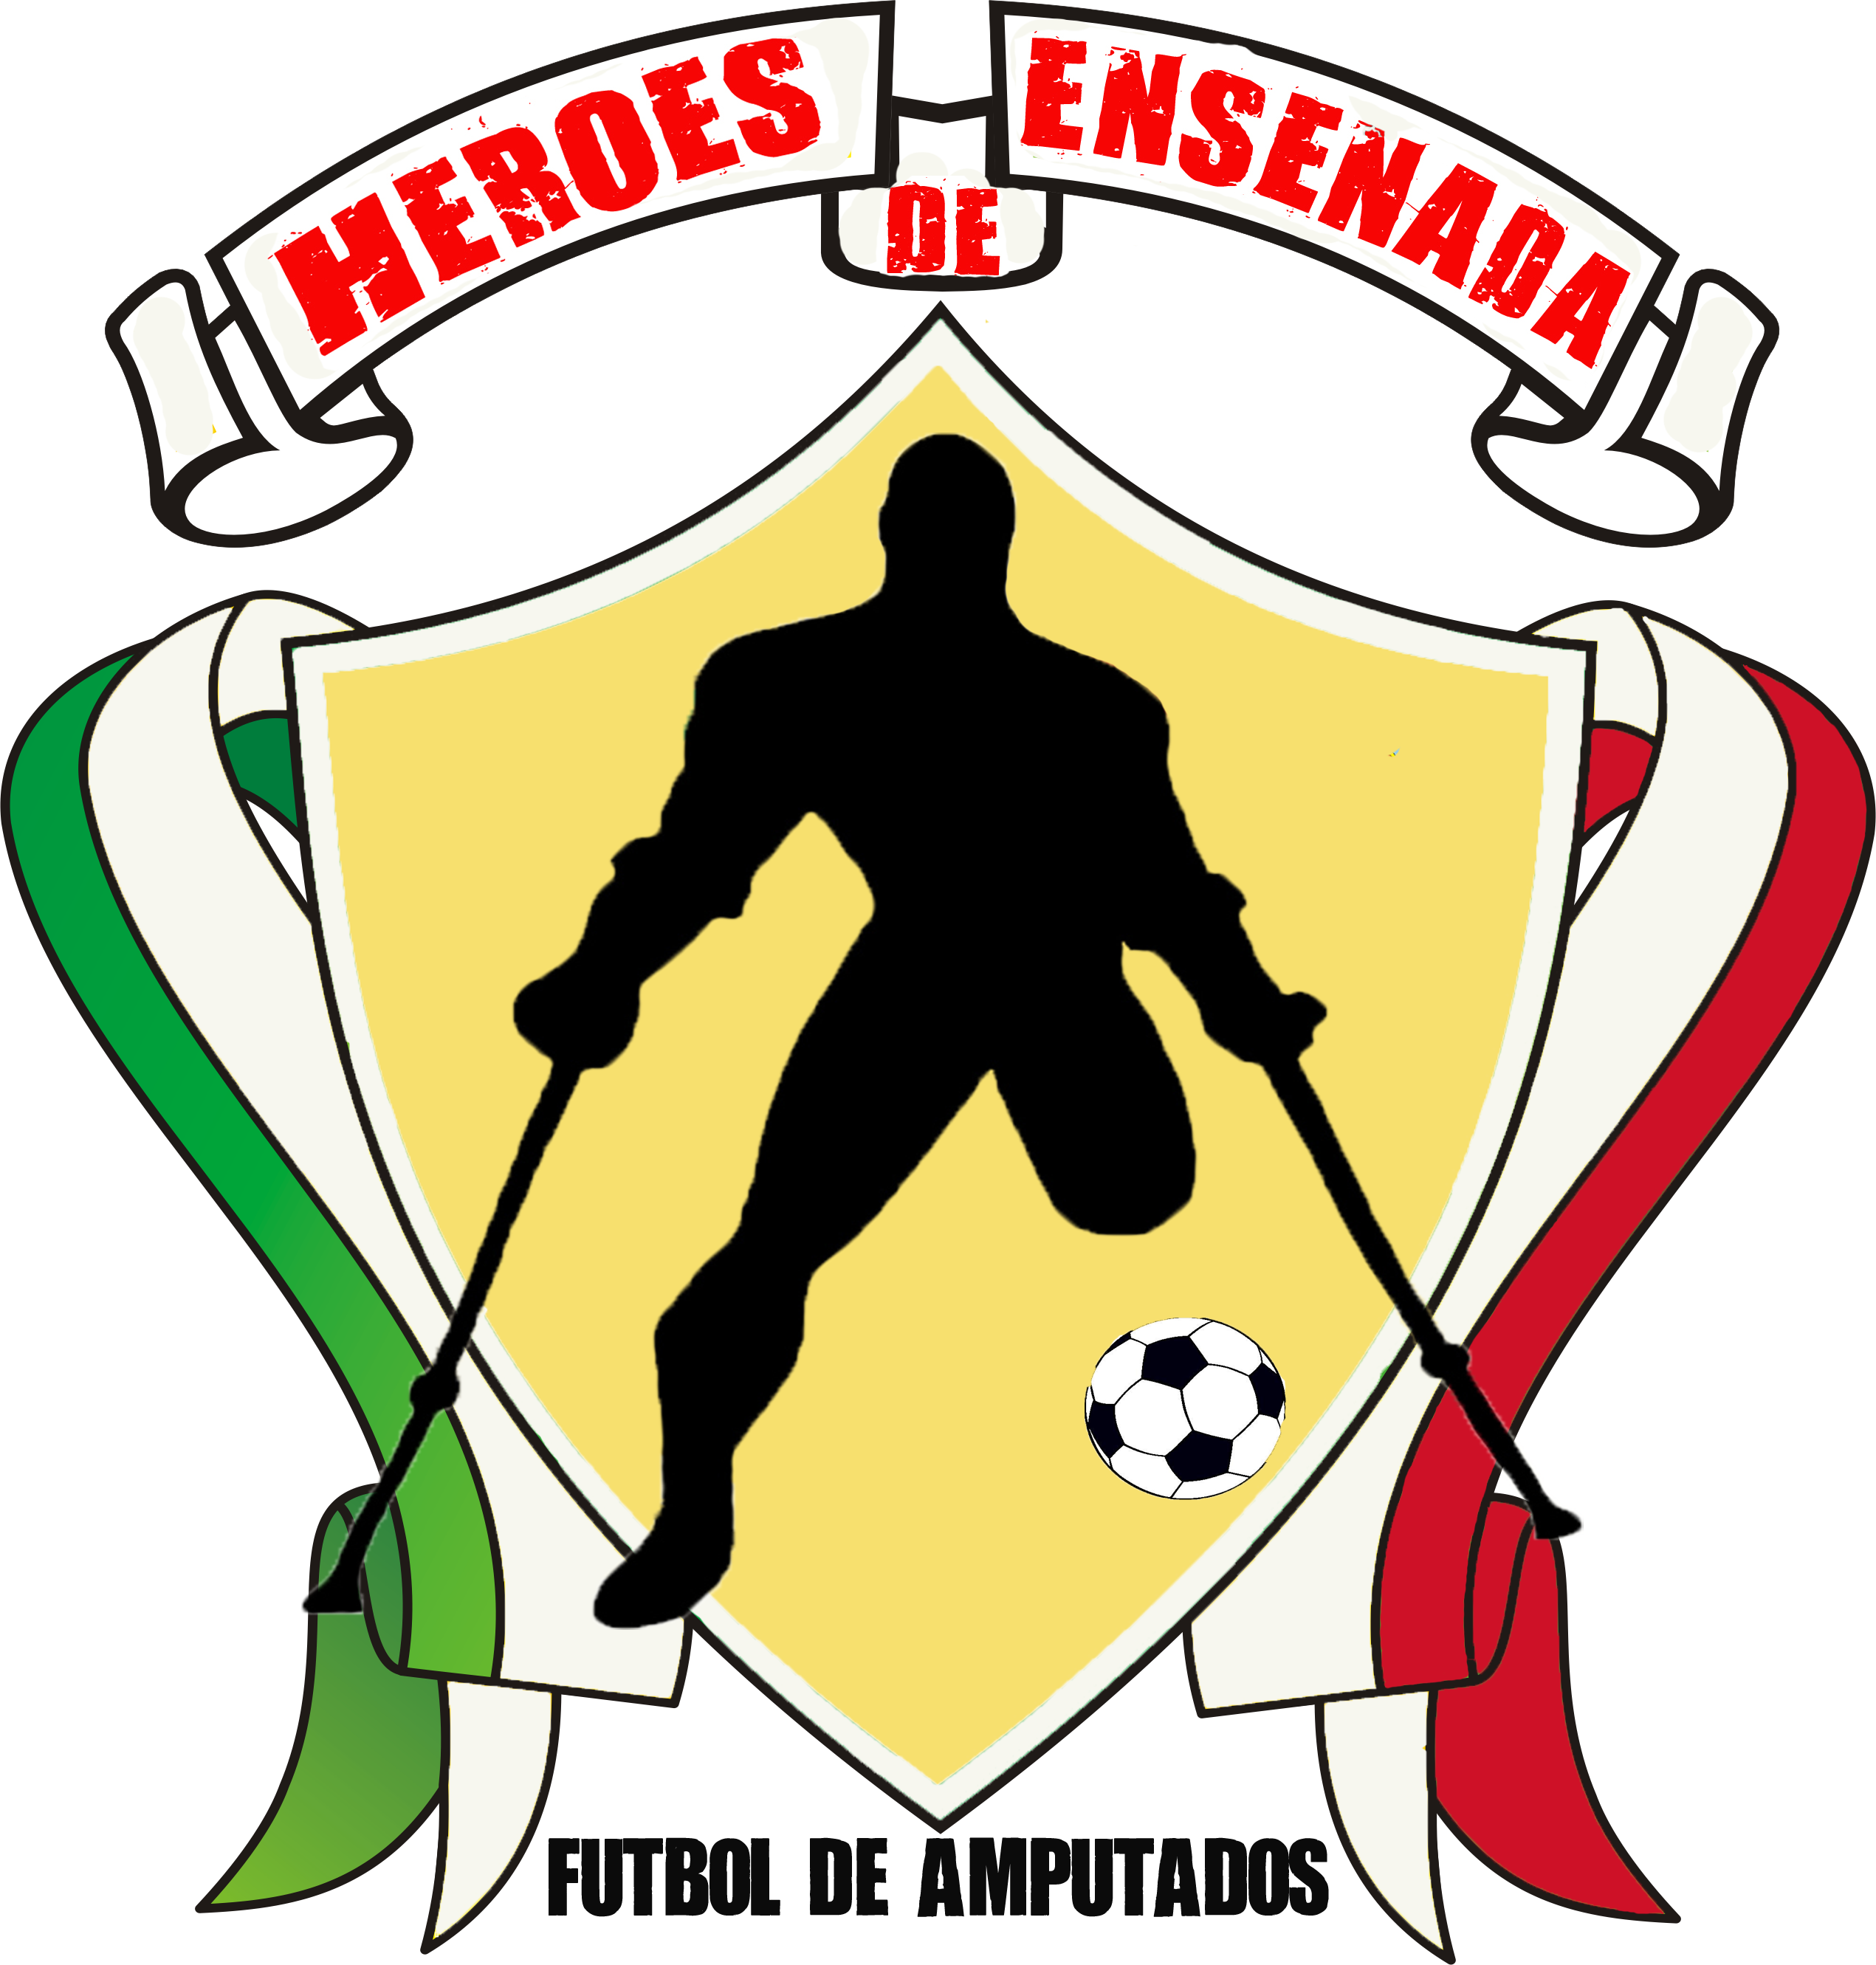 Hurt clipart soccer injury. Of amputees heroes ensenada